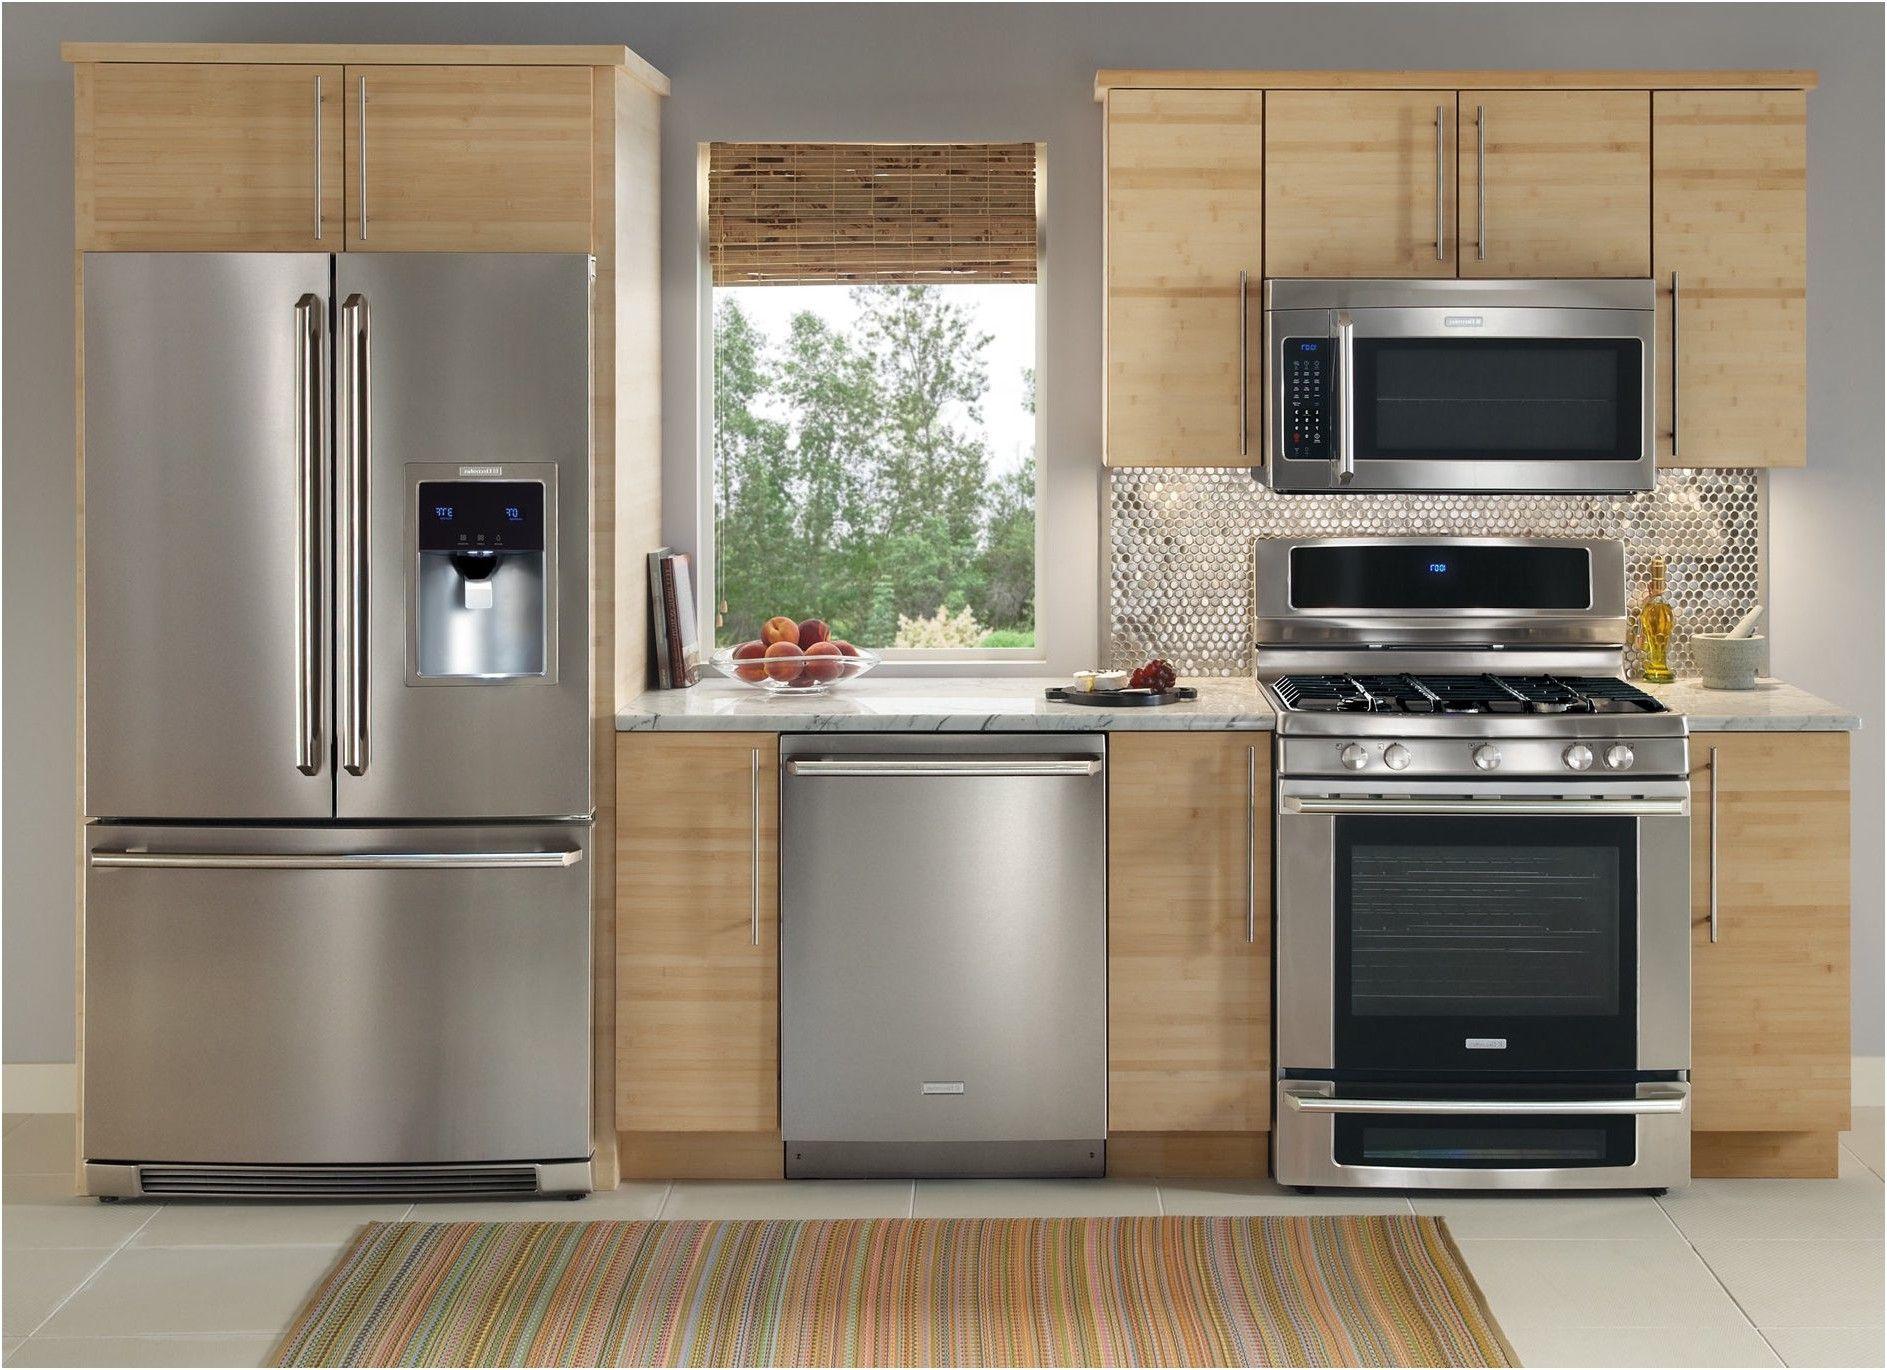 Kitchen Liances Choosing The Best Brands For Your Luxury From